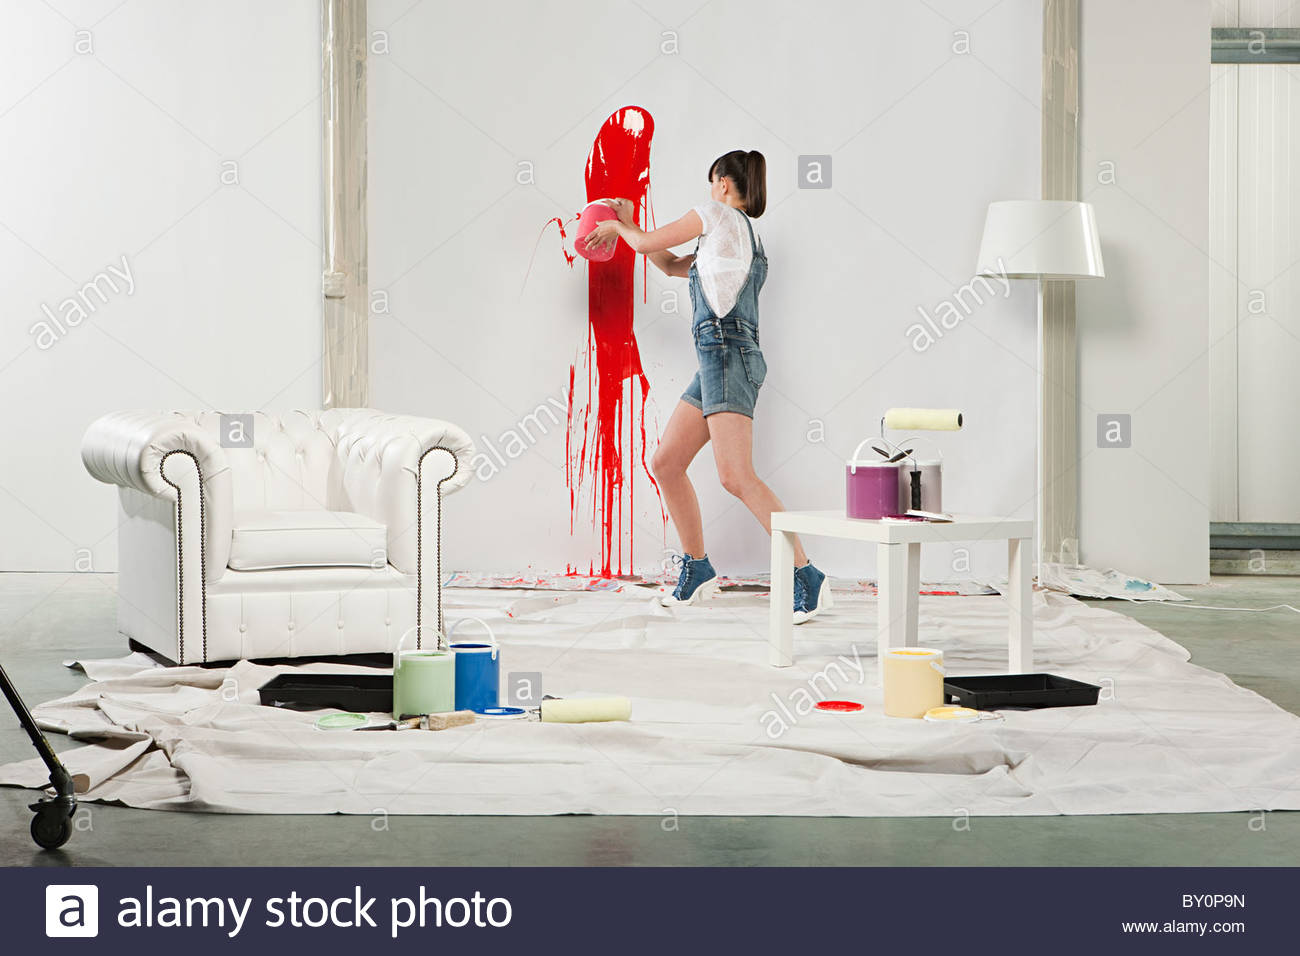 Young woman splashing red paint on white wall - Stock Image